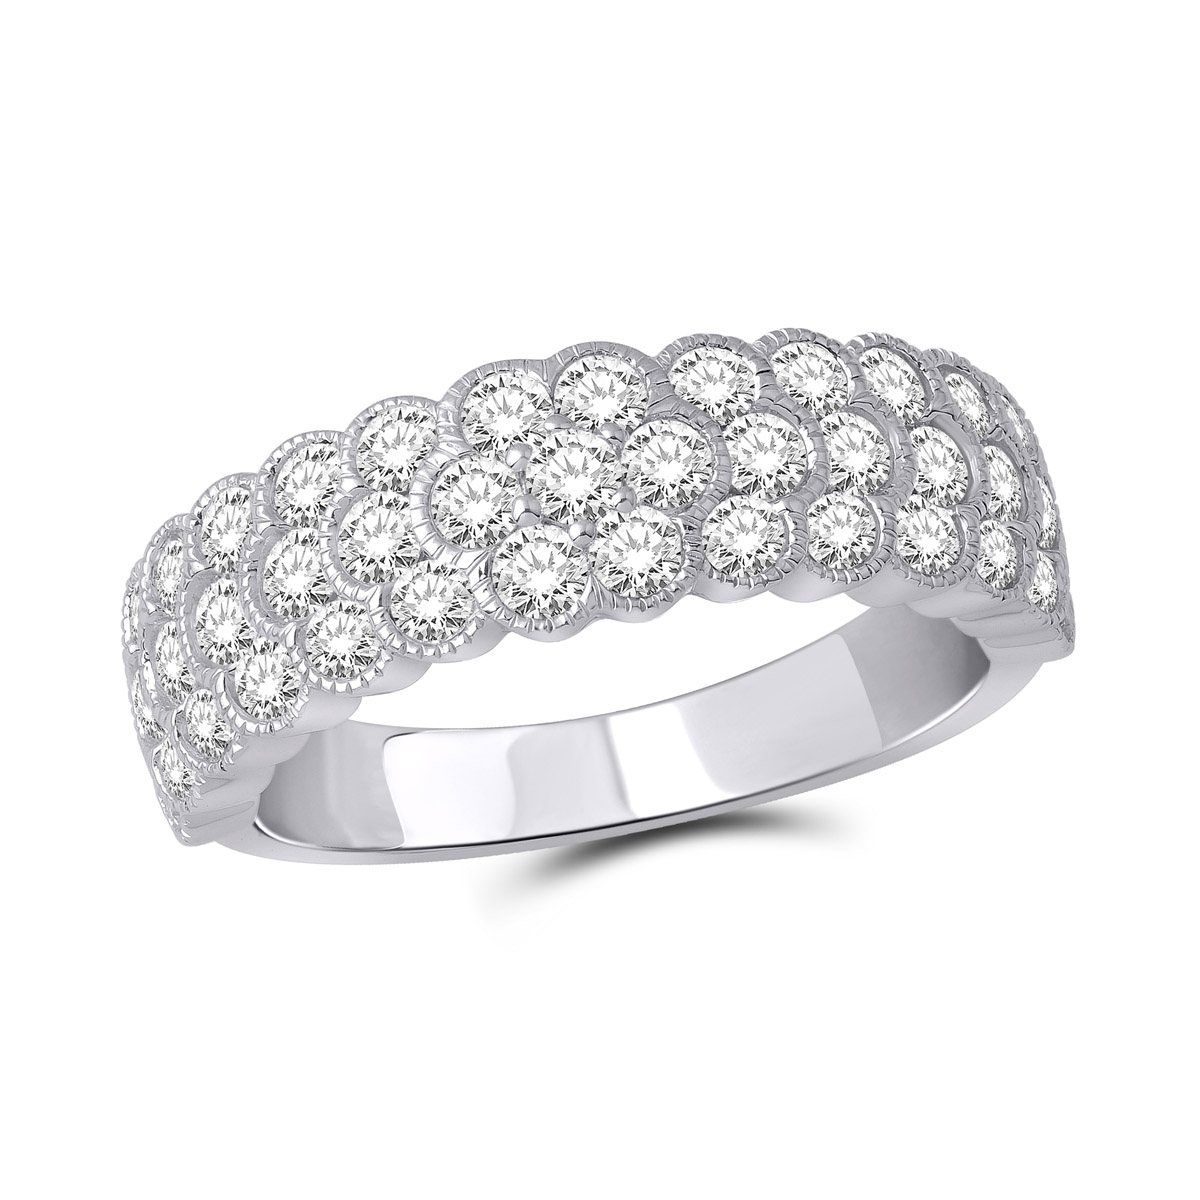 Paramount Gems 18 Karat White Gold Pave Diamond Band